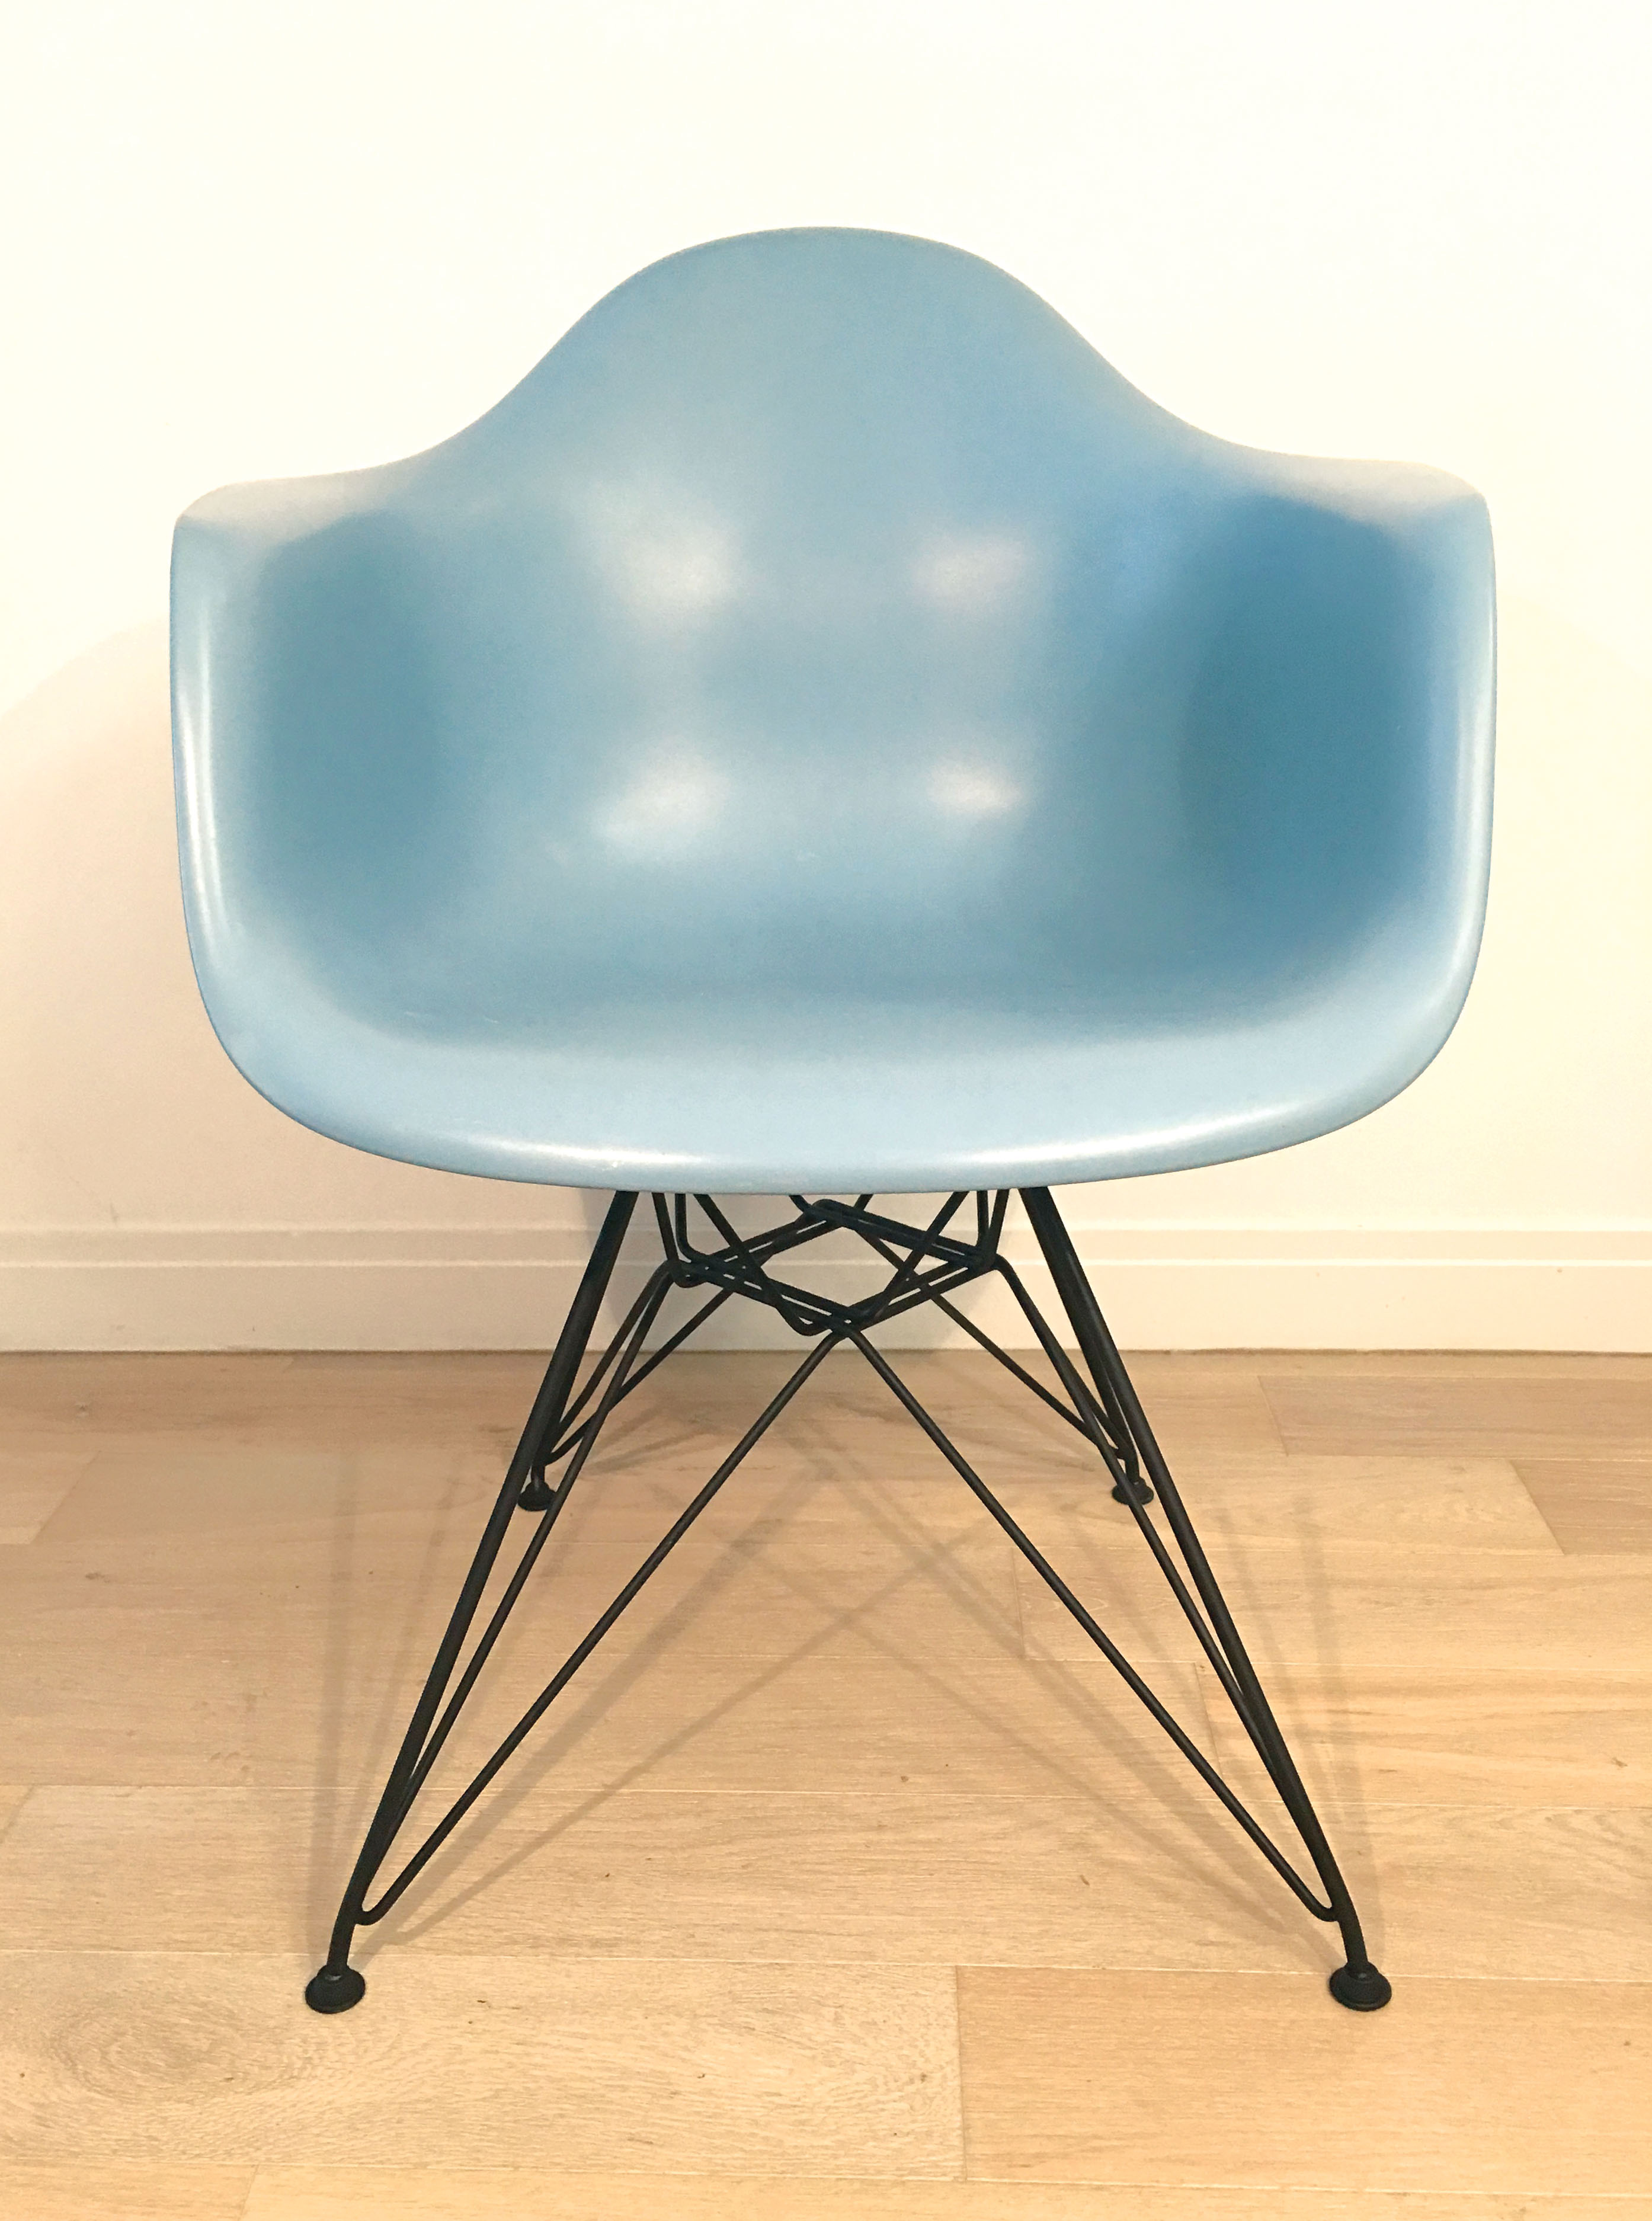 Blue 1990s Vitra Eames DSR Eiffel Side Chairs in very good condition